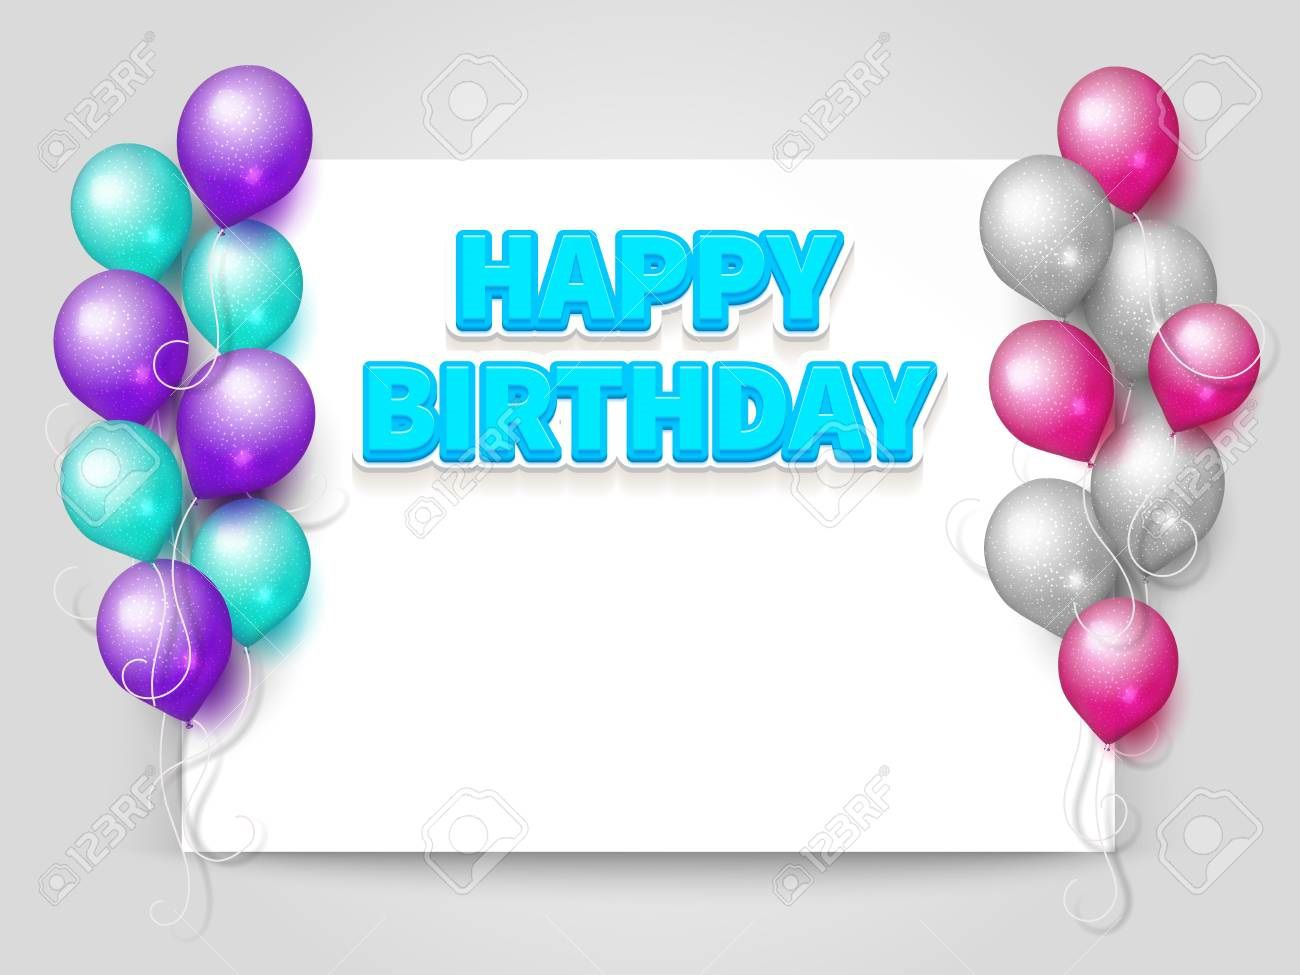 005 Unique Blank Birthday Card Template High Resolution  Word Free Printable Greeting DownloadFull